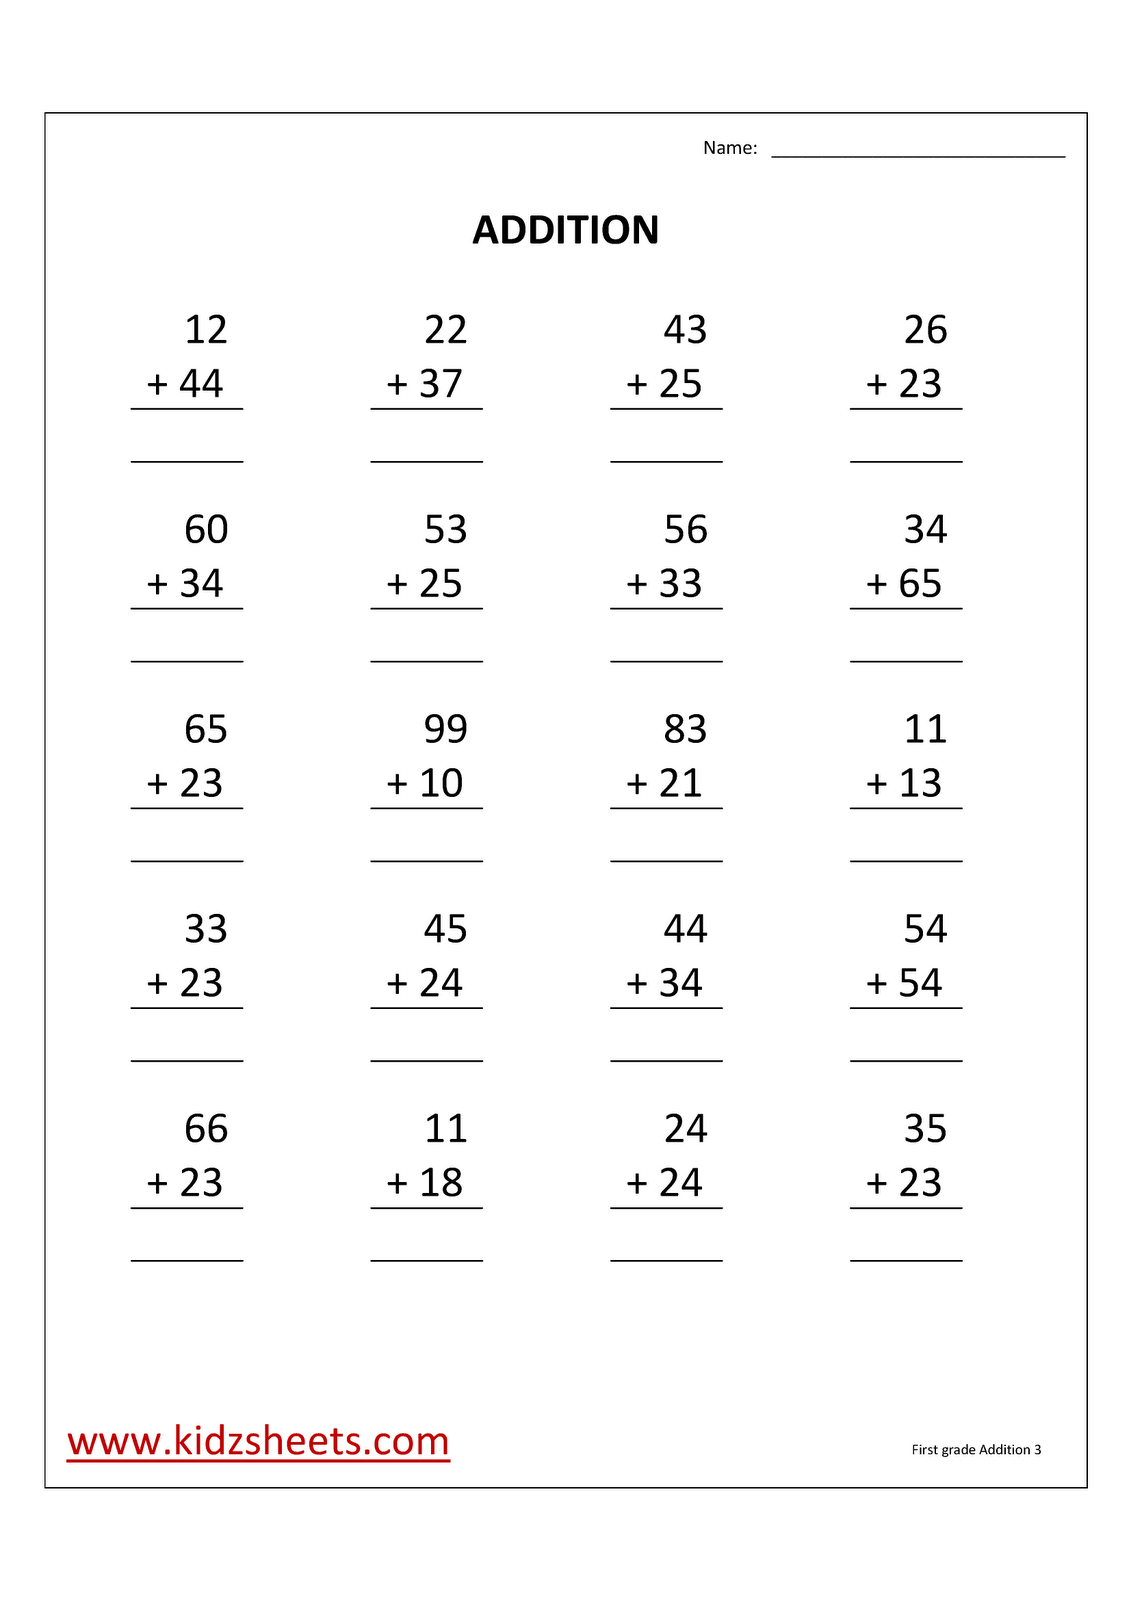 Kidz Worksheets First Grade Addition Worksheet3 – Addition Worksheets for Grade 5